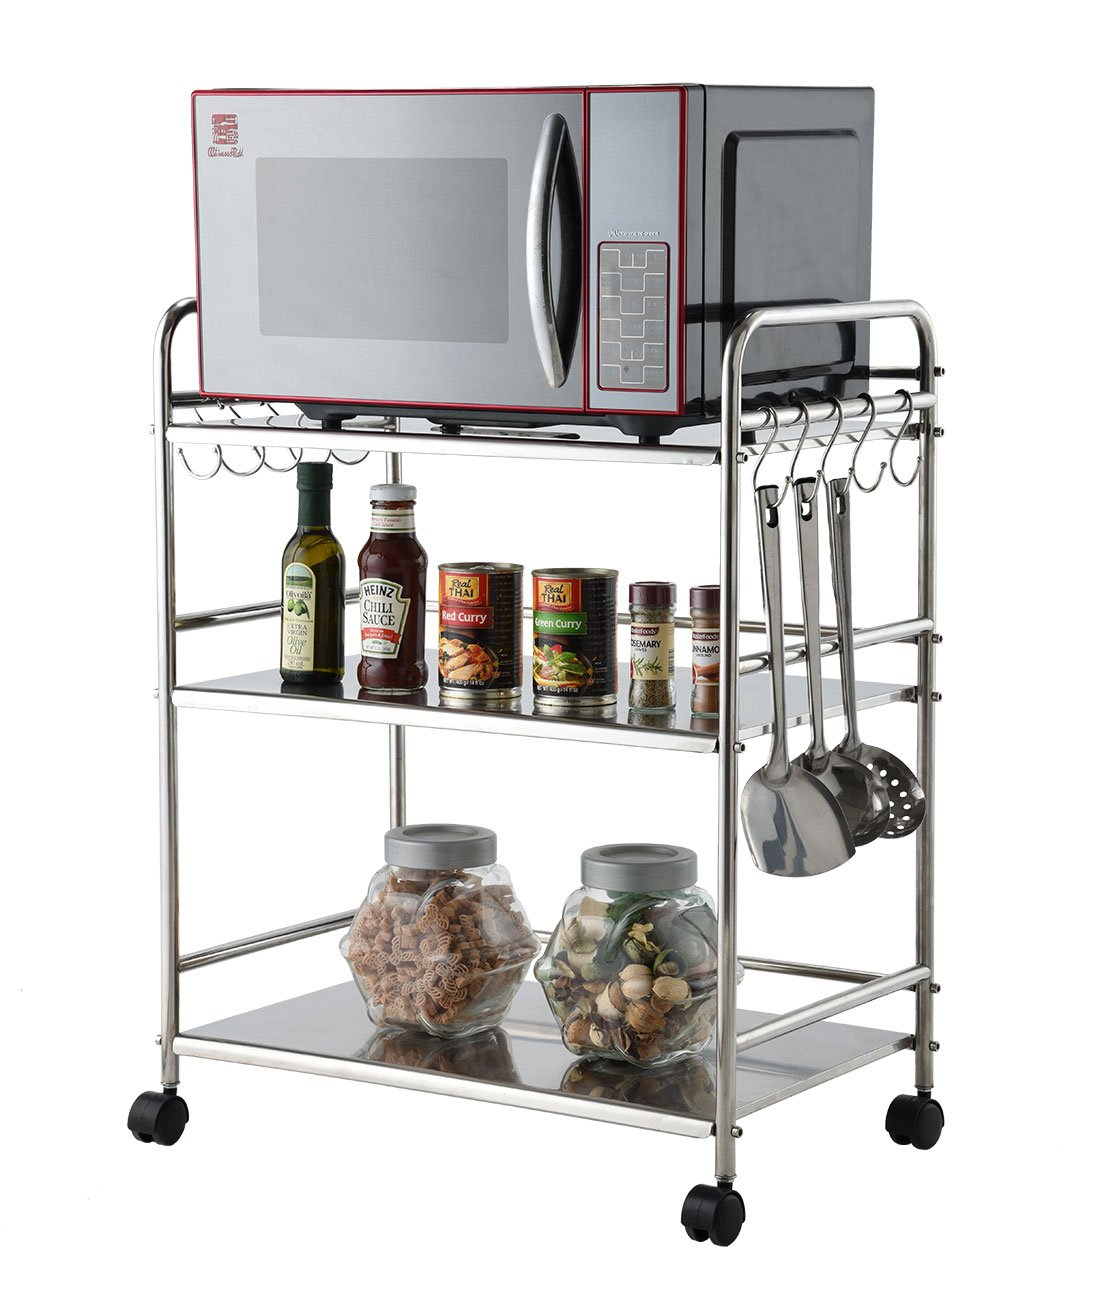 EASYTECH Durable 3-Tier Microwave Oven Storage Rack Kitchen Tableware Shelves Counter and Cabinet Shelf With 10 Side Hooks